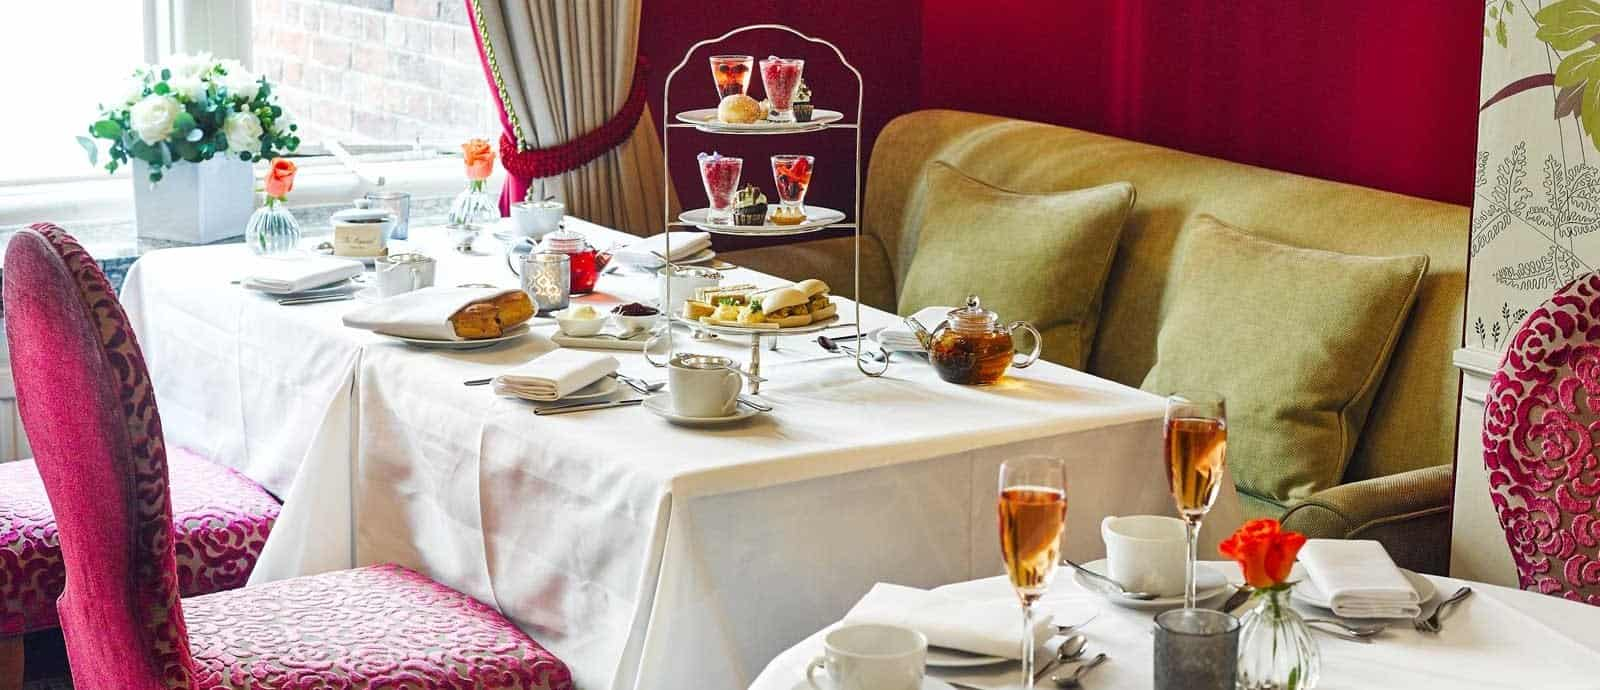 Amazing afternoon tea halal options in LOndon for muslims